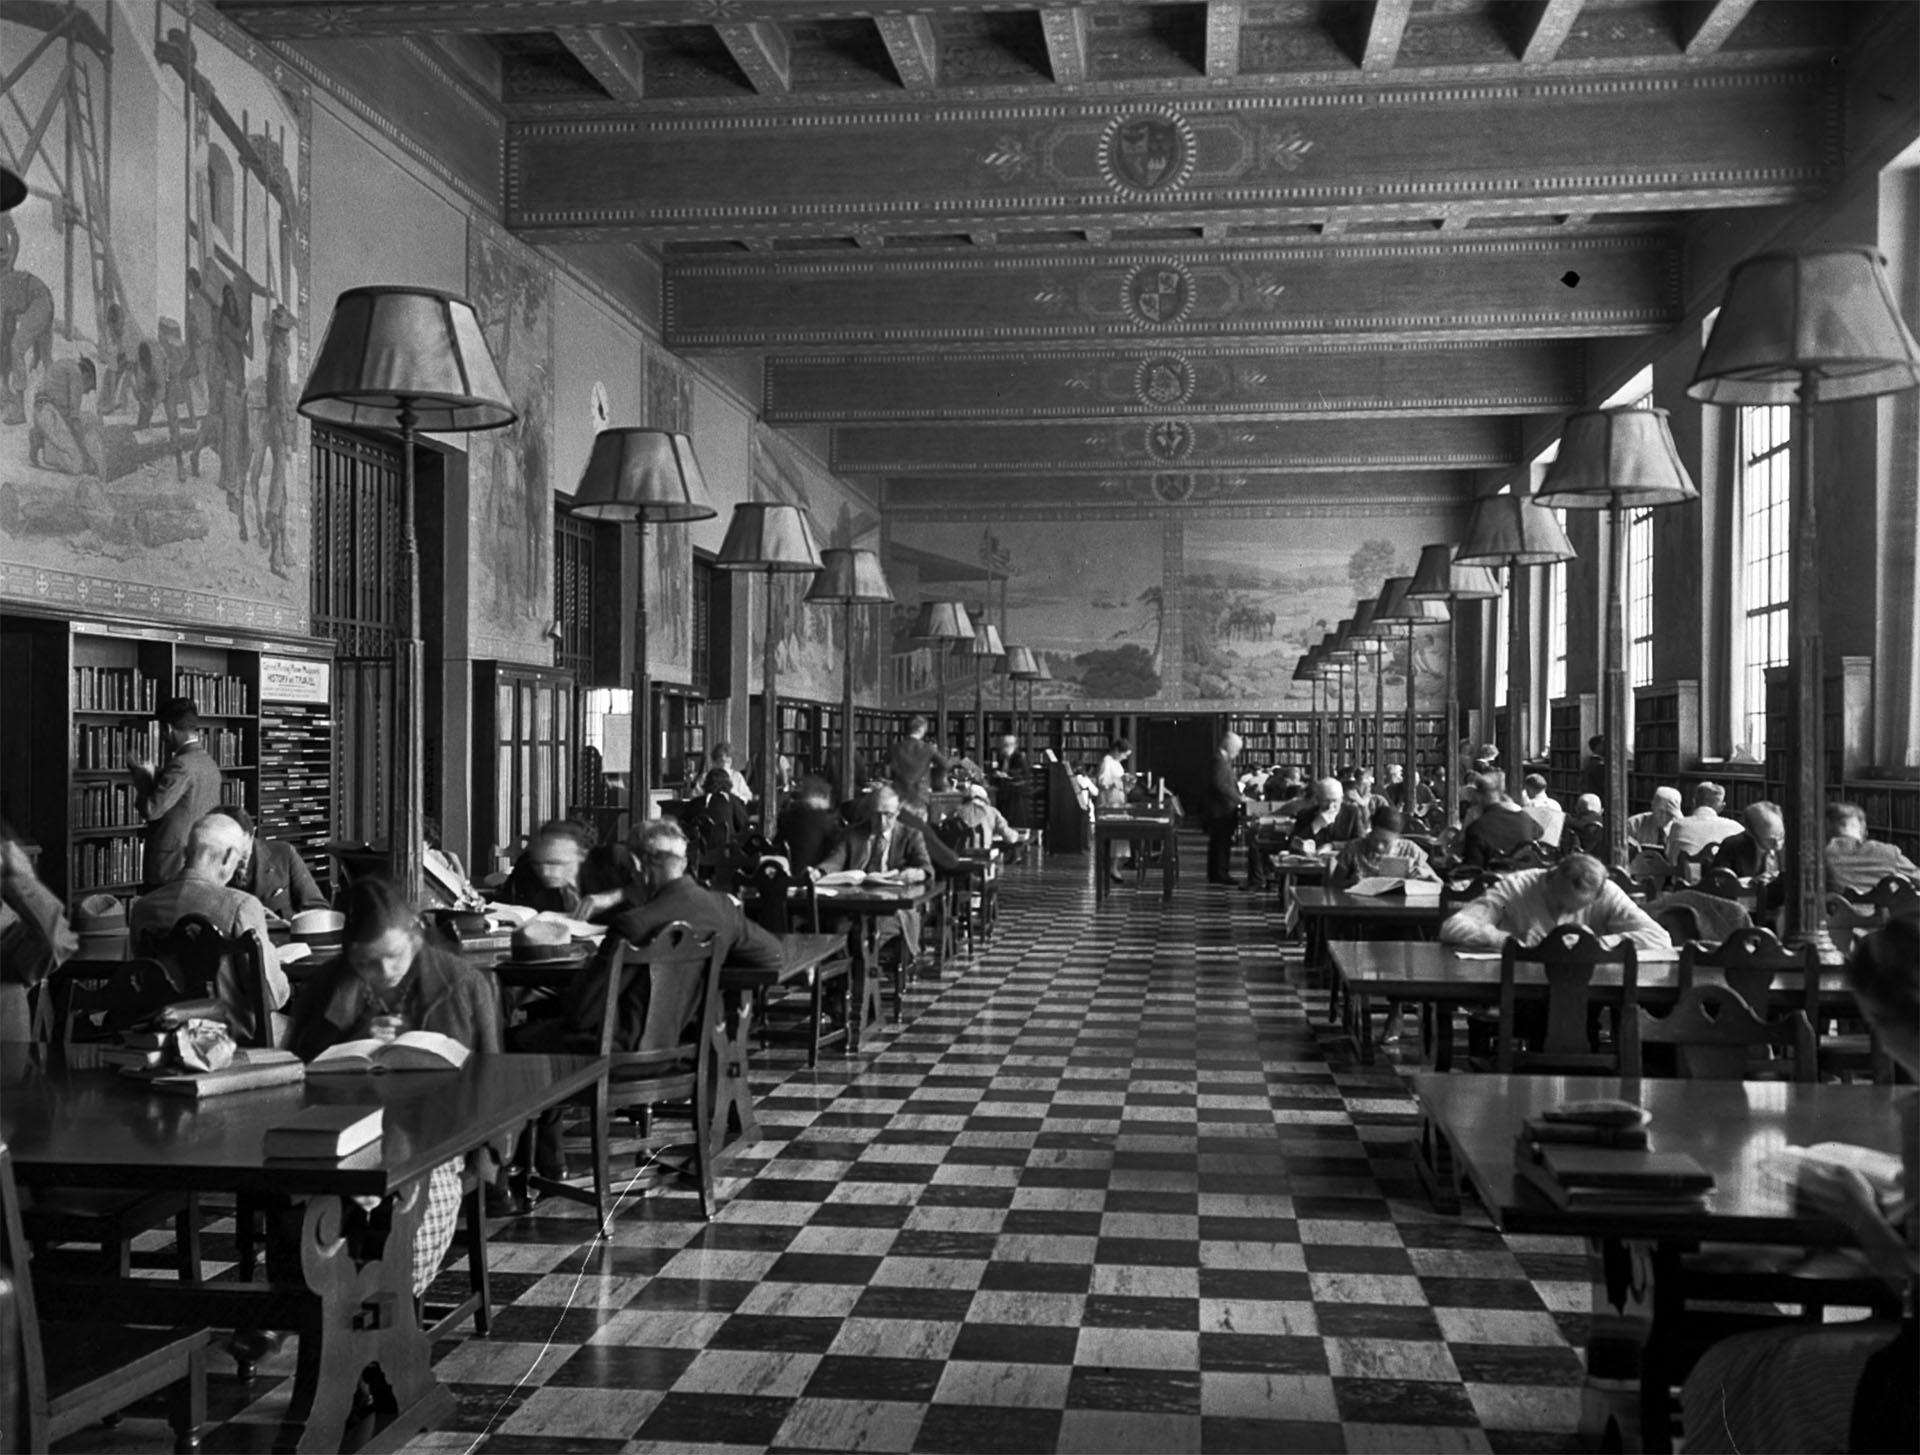 The History Room of the Los Angeles Central Library in 1937